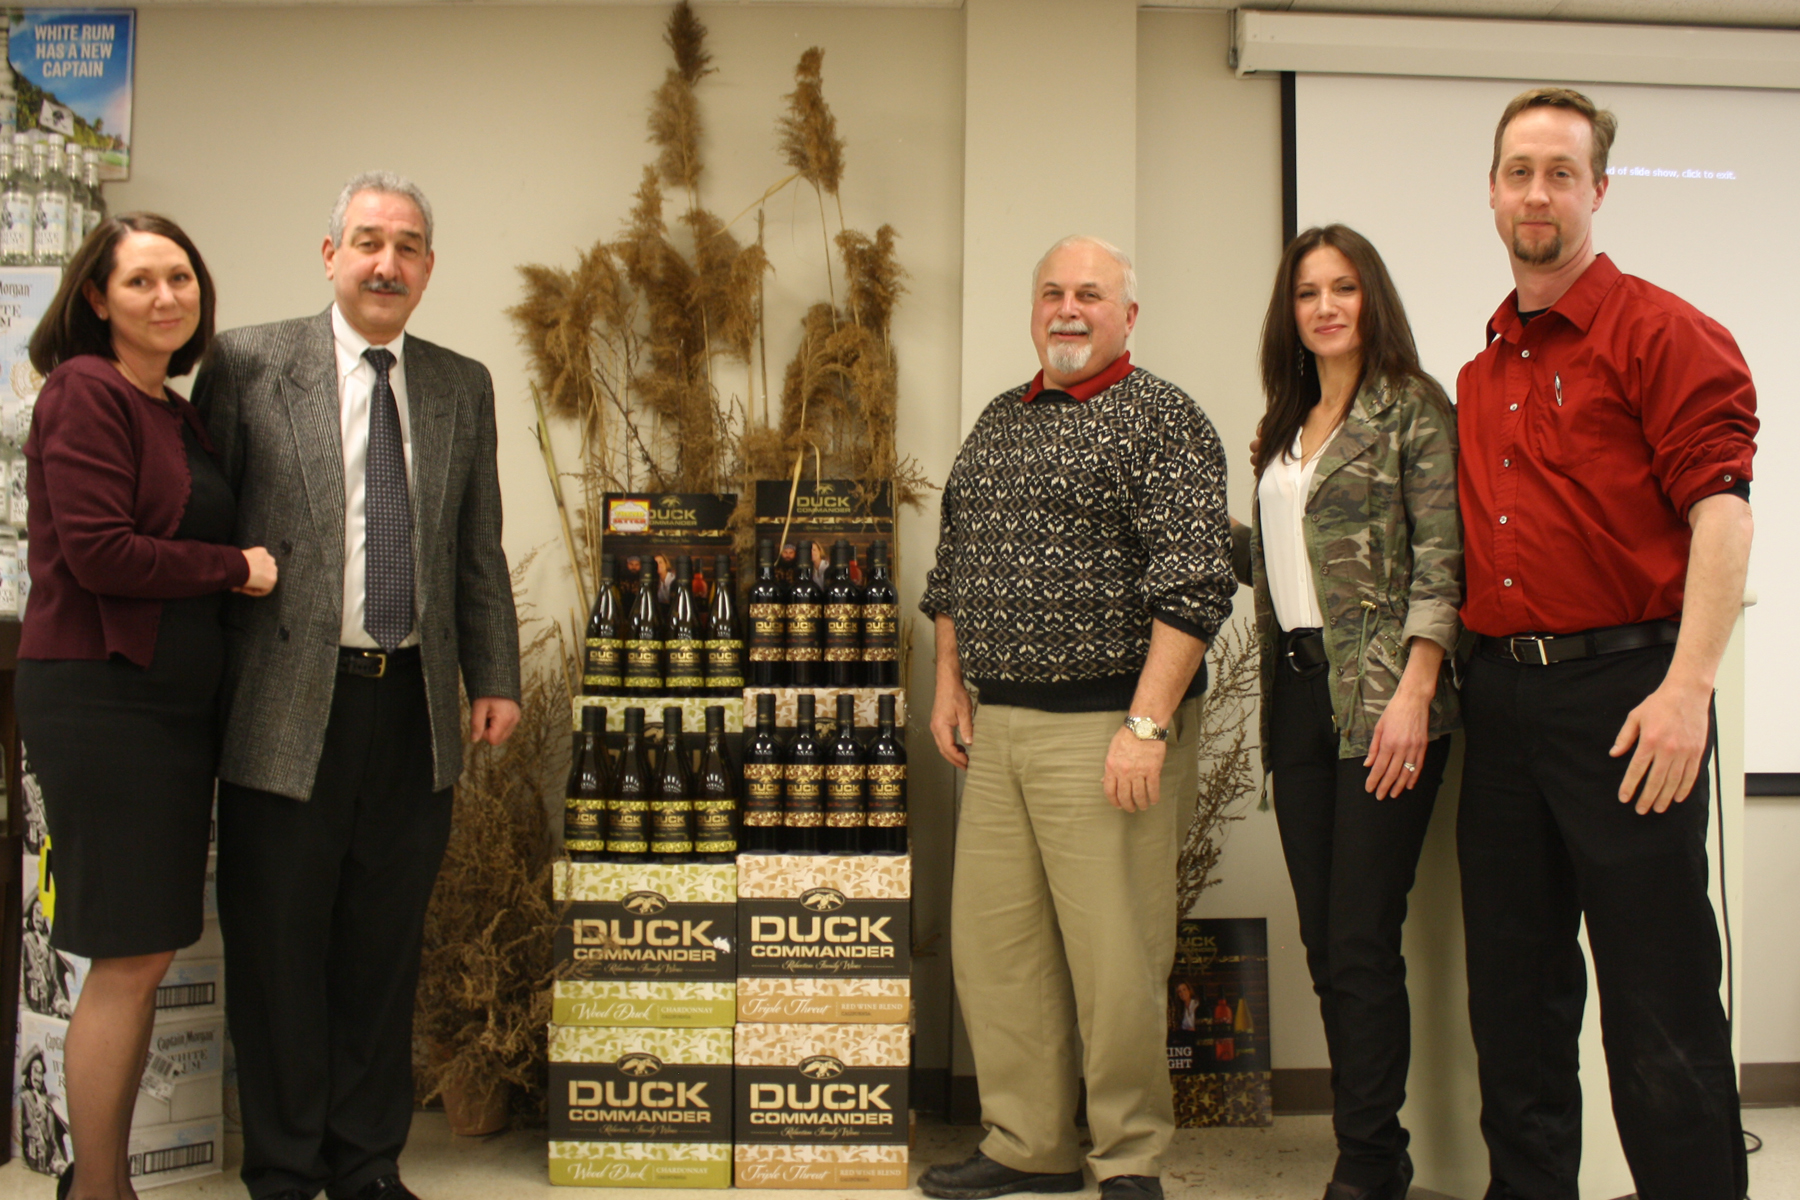 Michelle Yackel, Business Manager, CDI; Doug Ramey, Sales Representative, CDI; Gary Costa, Sales Representative, CDI; Teresa Drew, Trinchero Family Estates Regional Manager; and Dave Unever, Sales Representative, CDI.